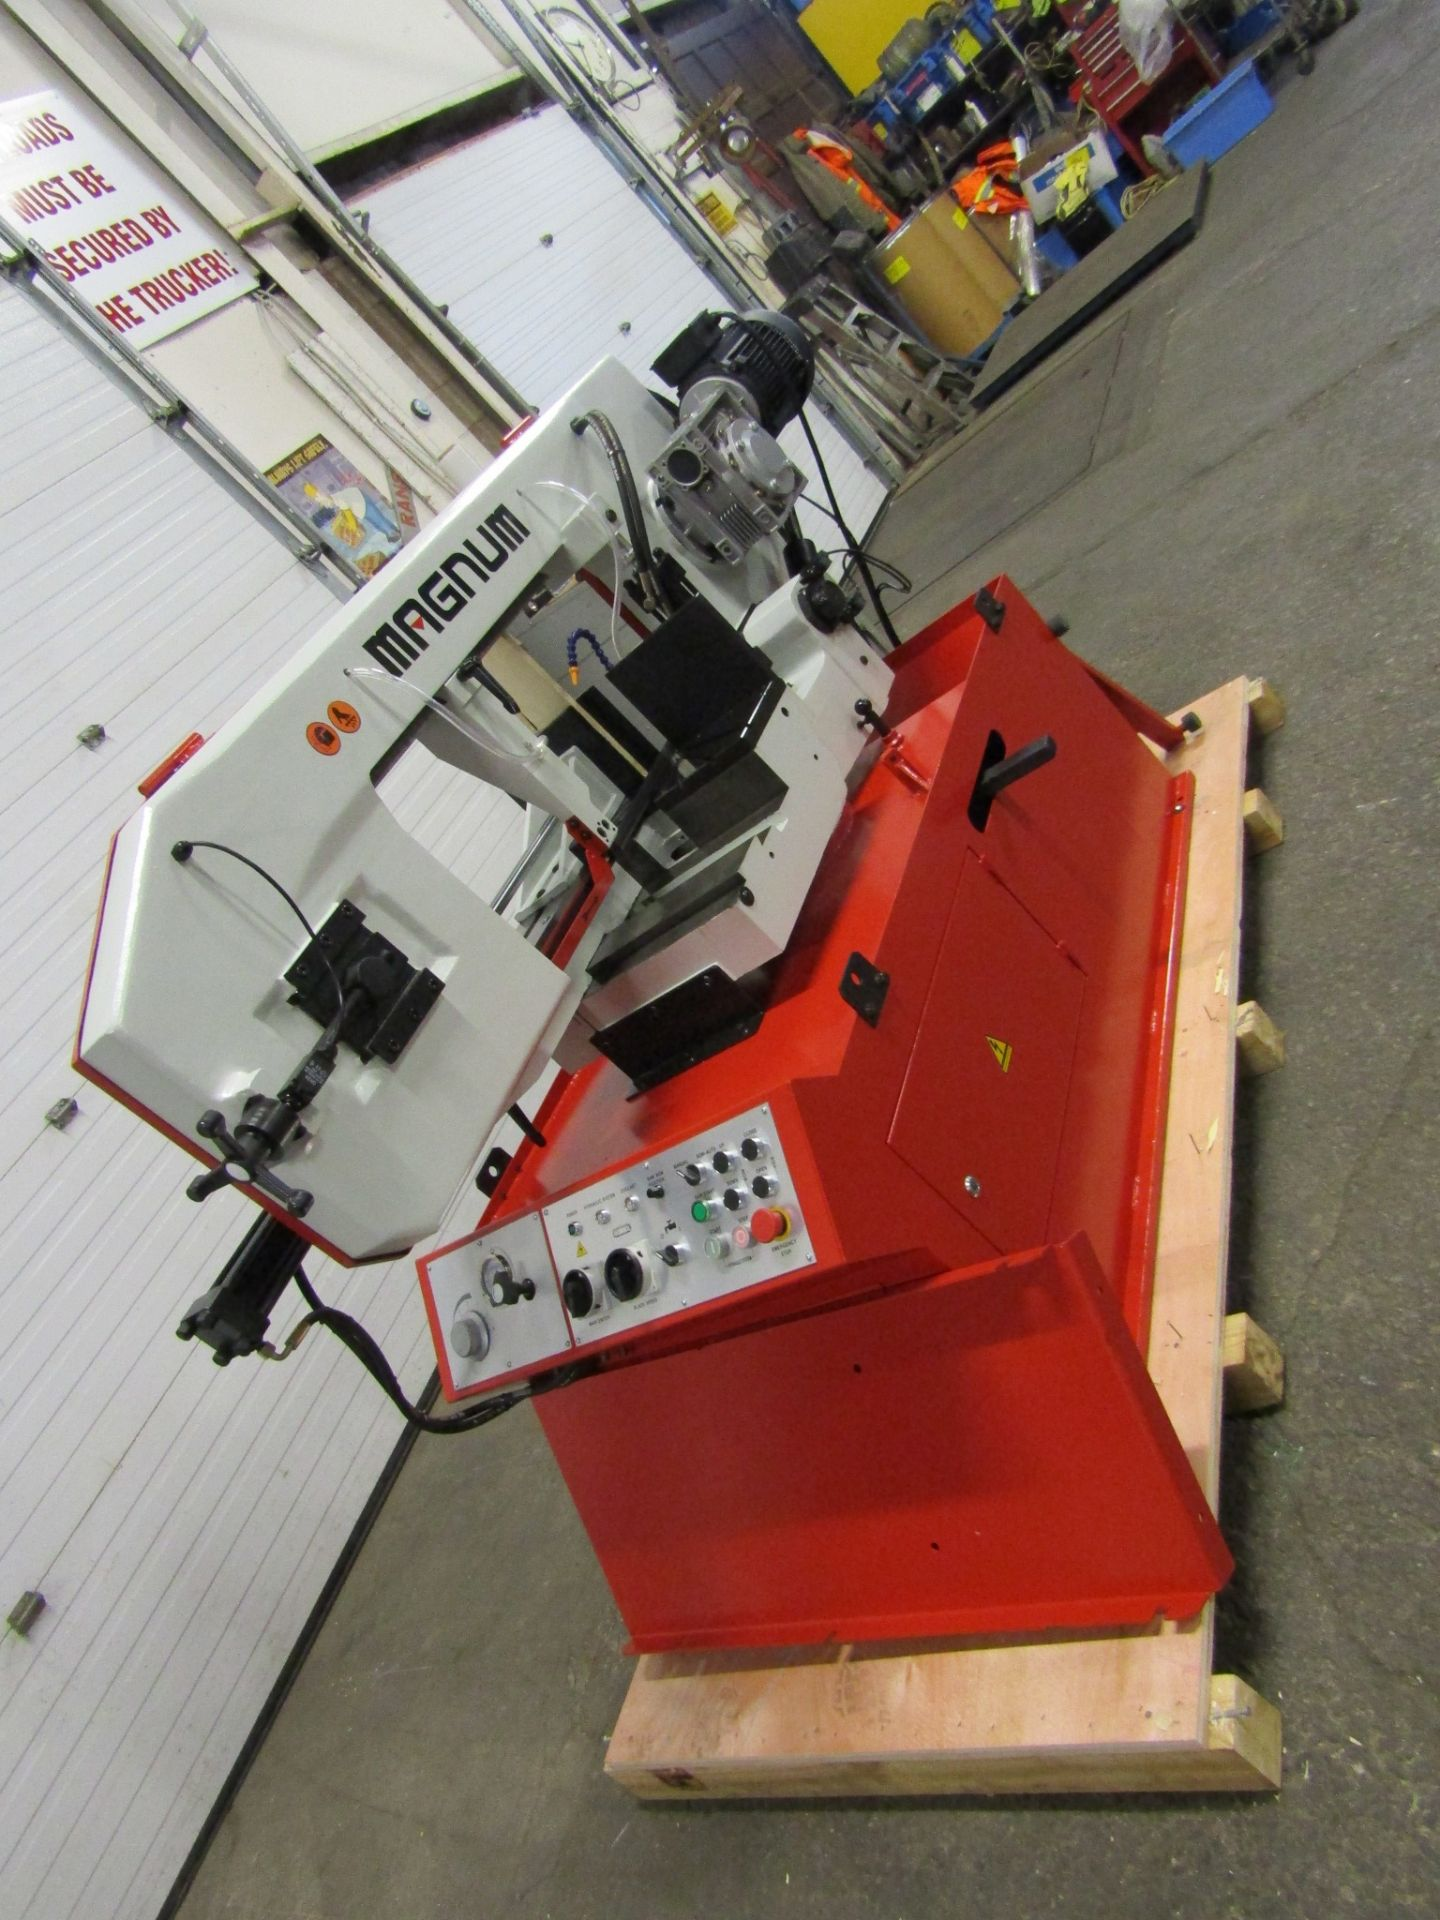 Magnum BSM-1813 Mitering Horizontal Band Saw - 18 X 13 inch CUTTING CAPACITY - CNC capability with - Image 4 of 4